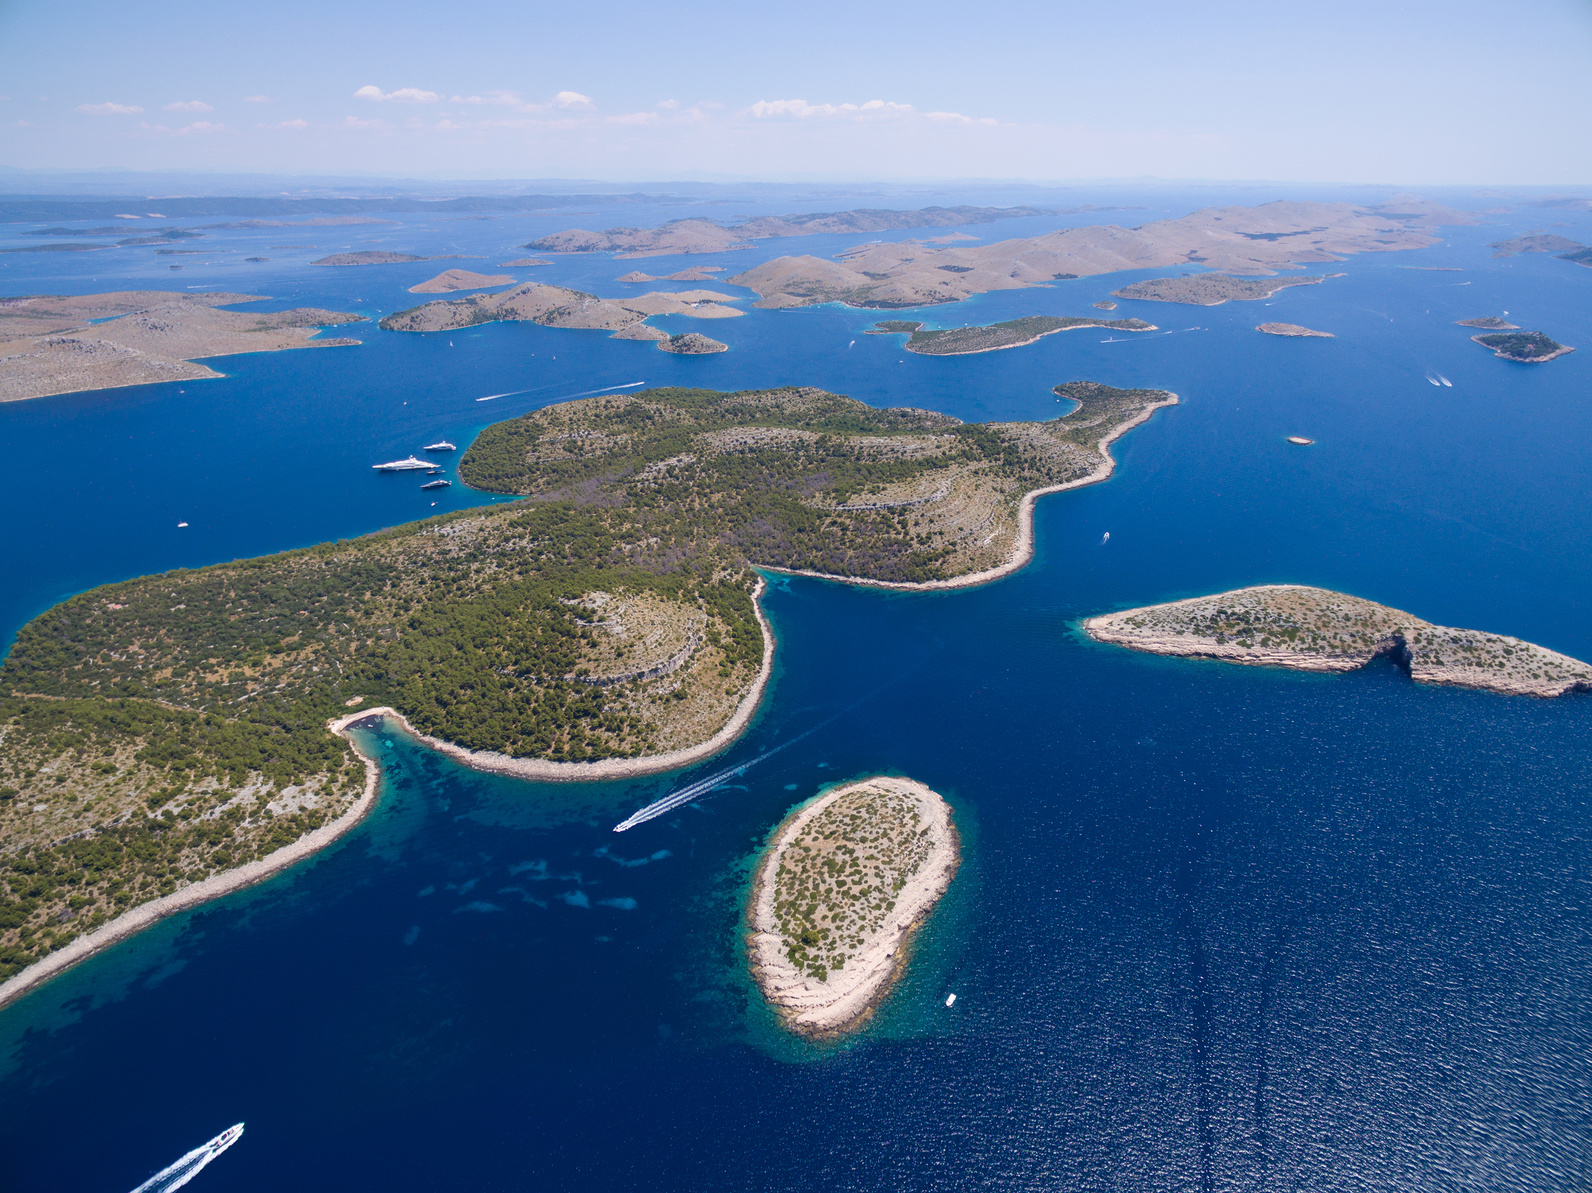 Sailing around Kornati archipelago